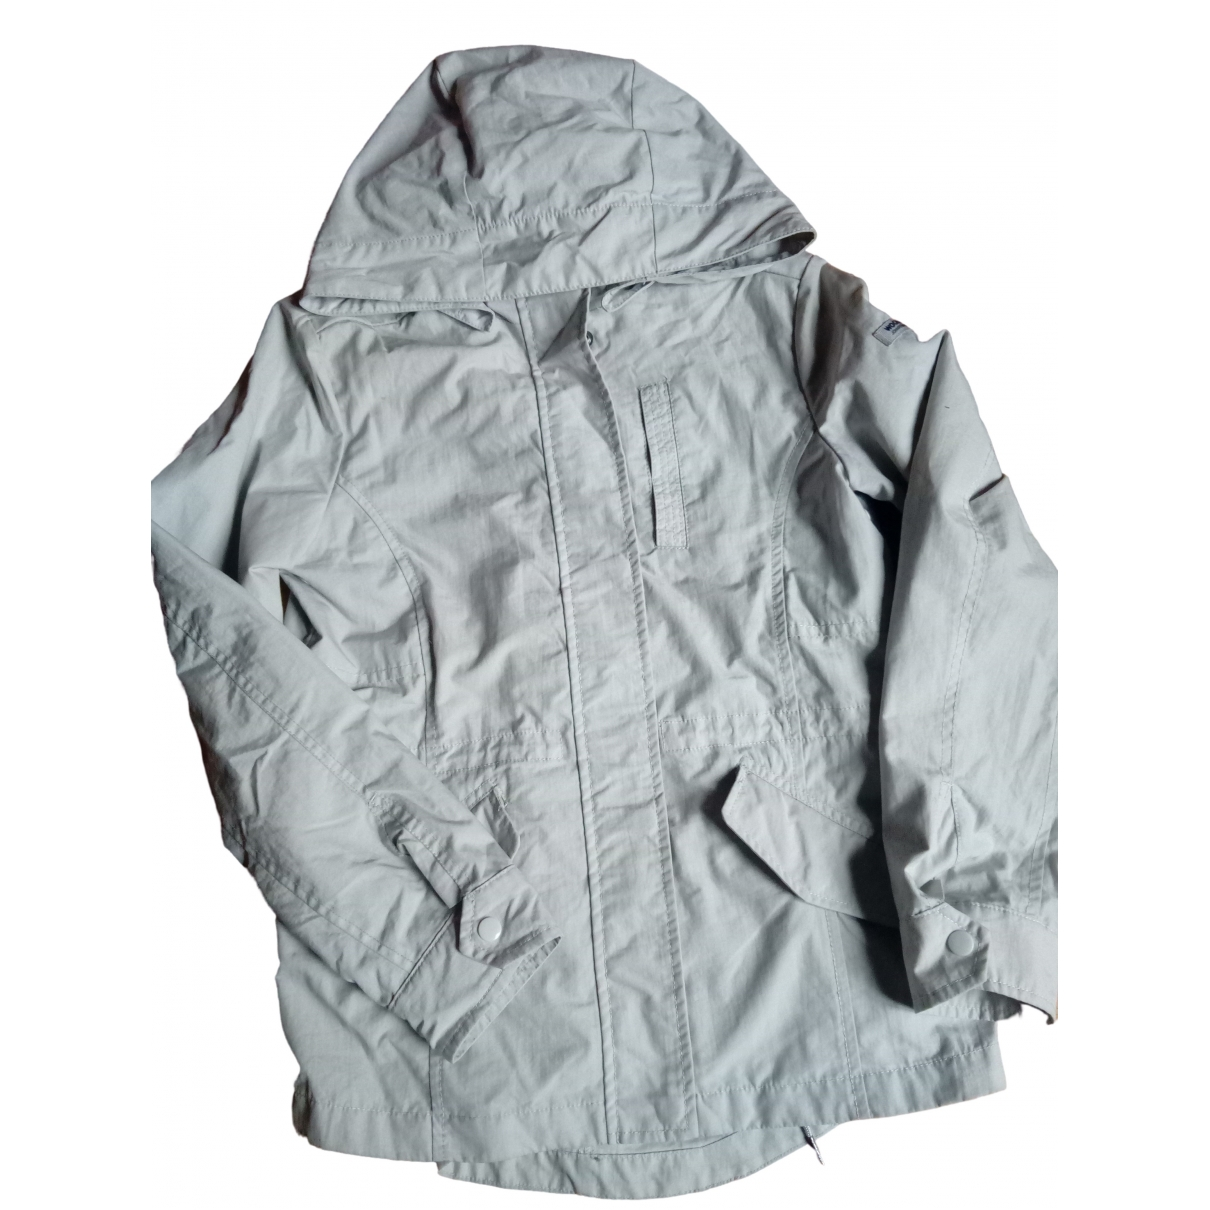 Woolrich \N Grey Cotton jacket & coat for Kids 12 years - XS FR